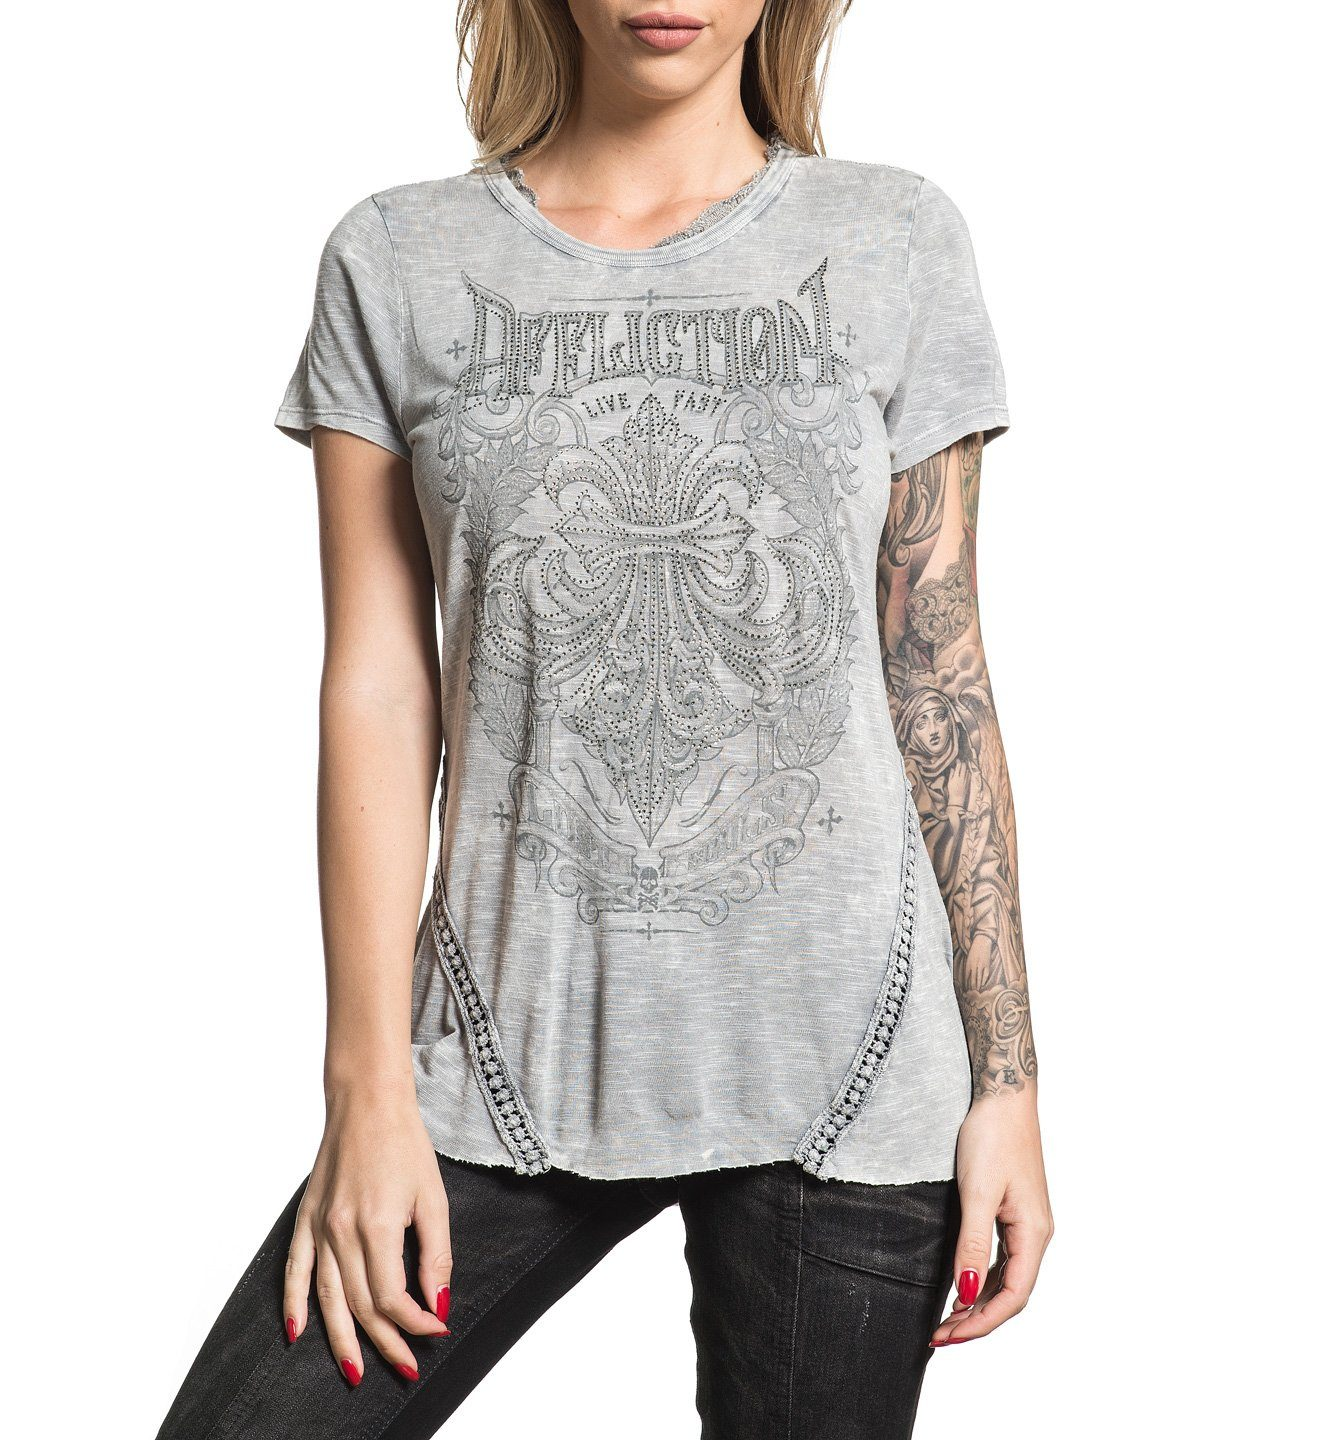 Corroded - Womens Short Sleeve Tees - Affliction Clothing